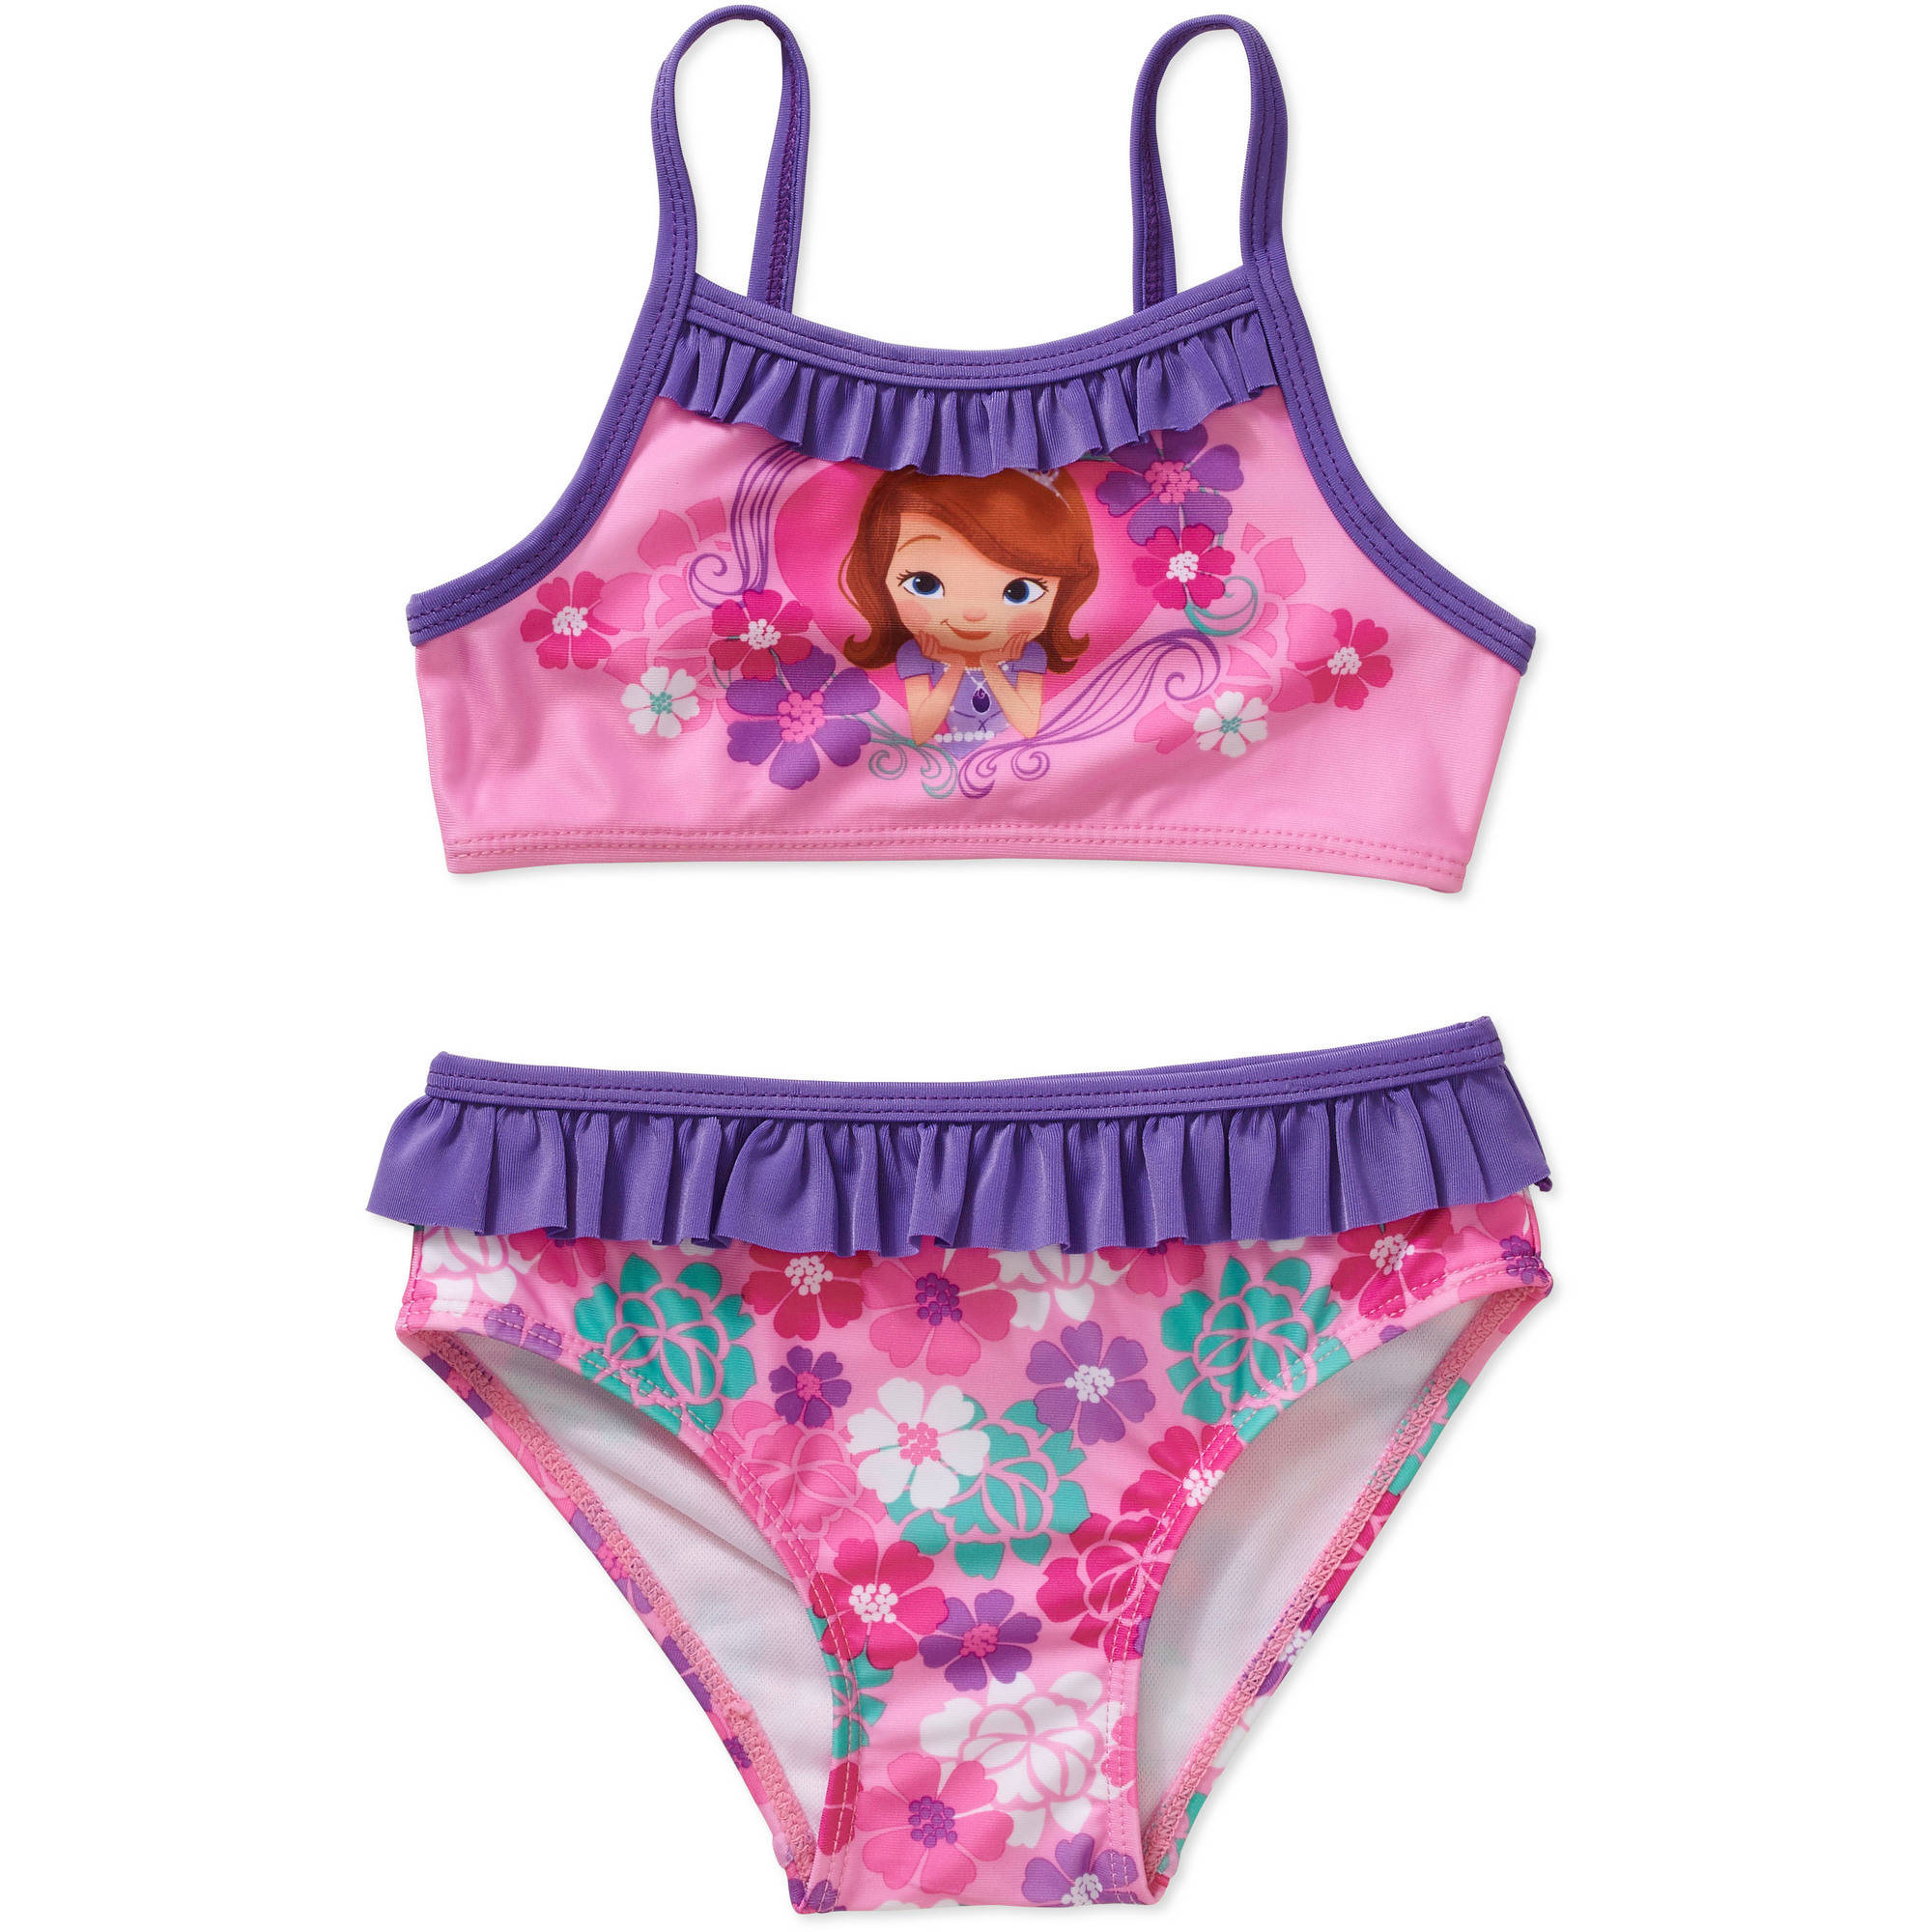 Disney Sofia the First Princess Toddler Girl Bikini Swimsuit